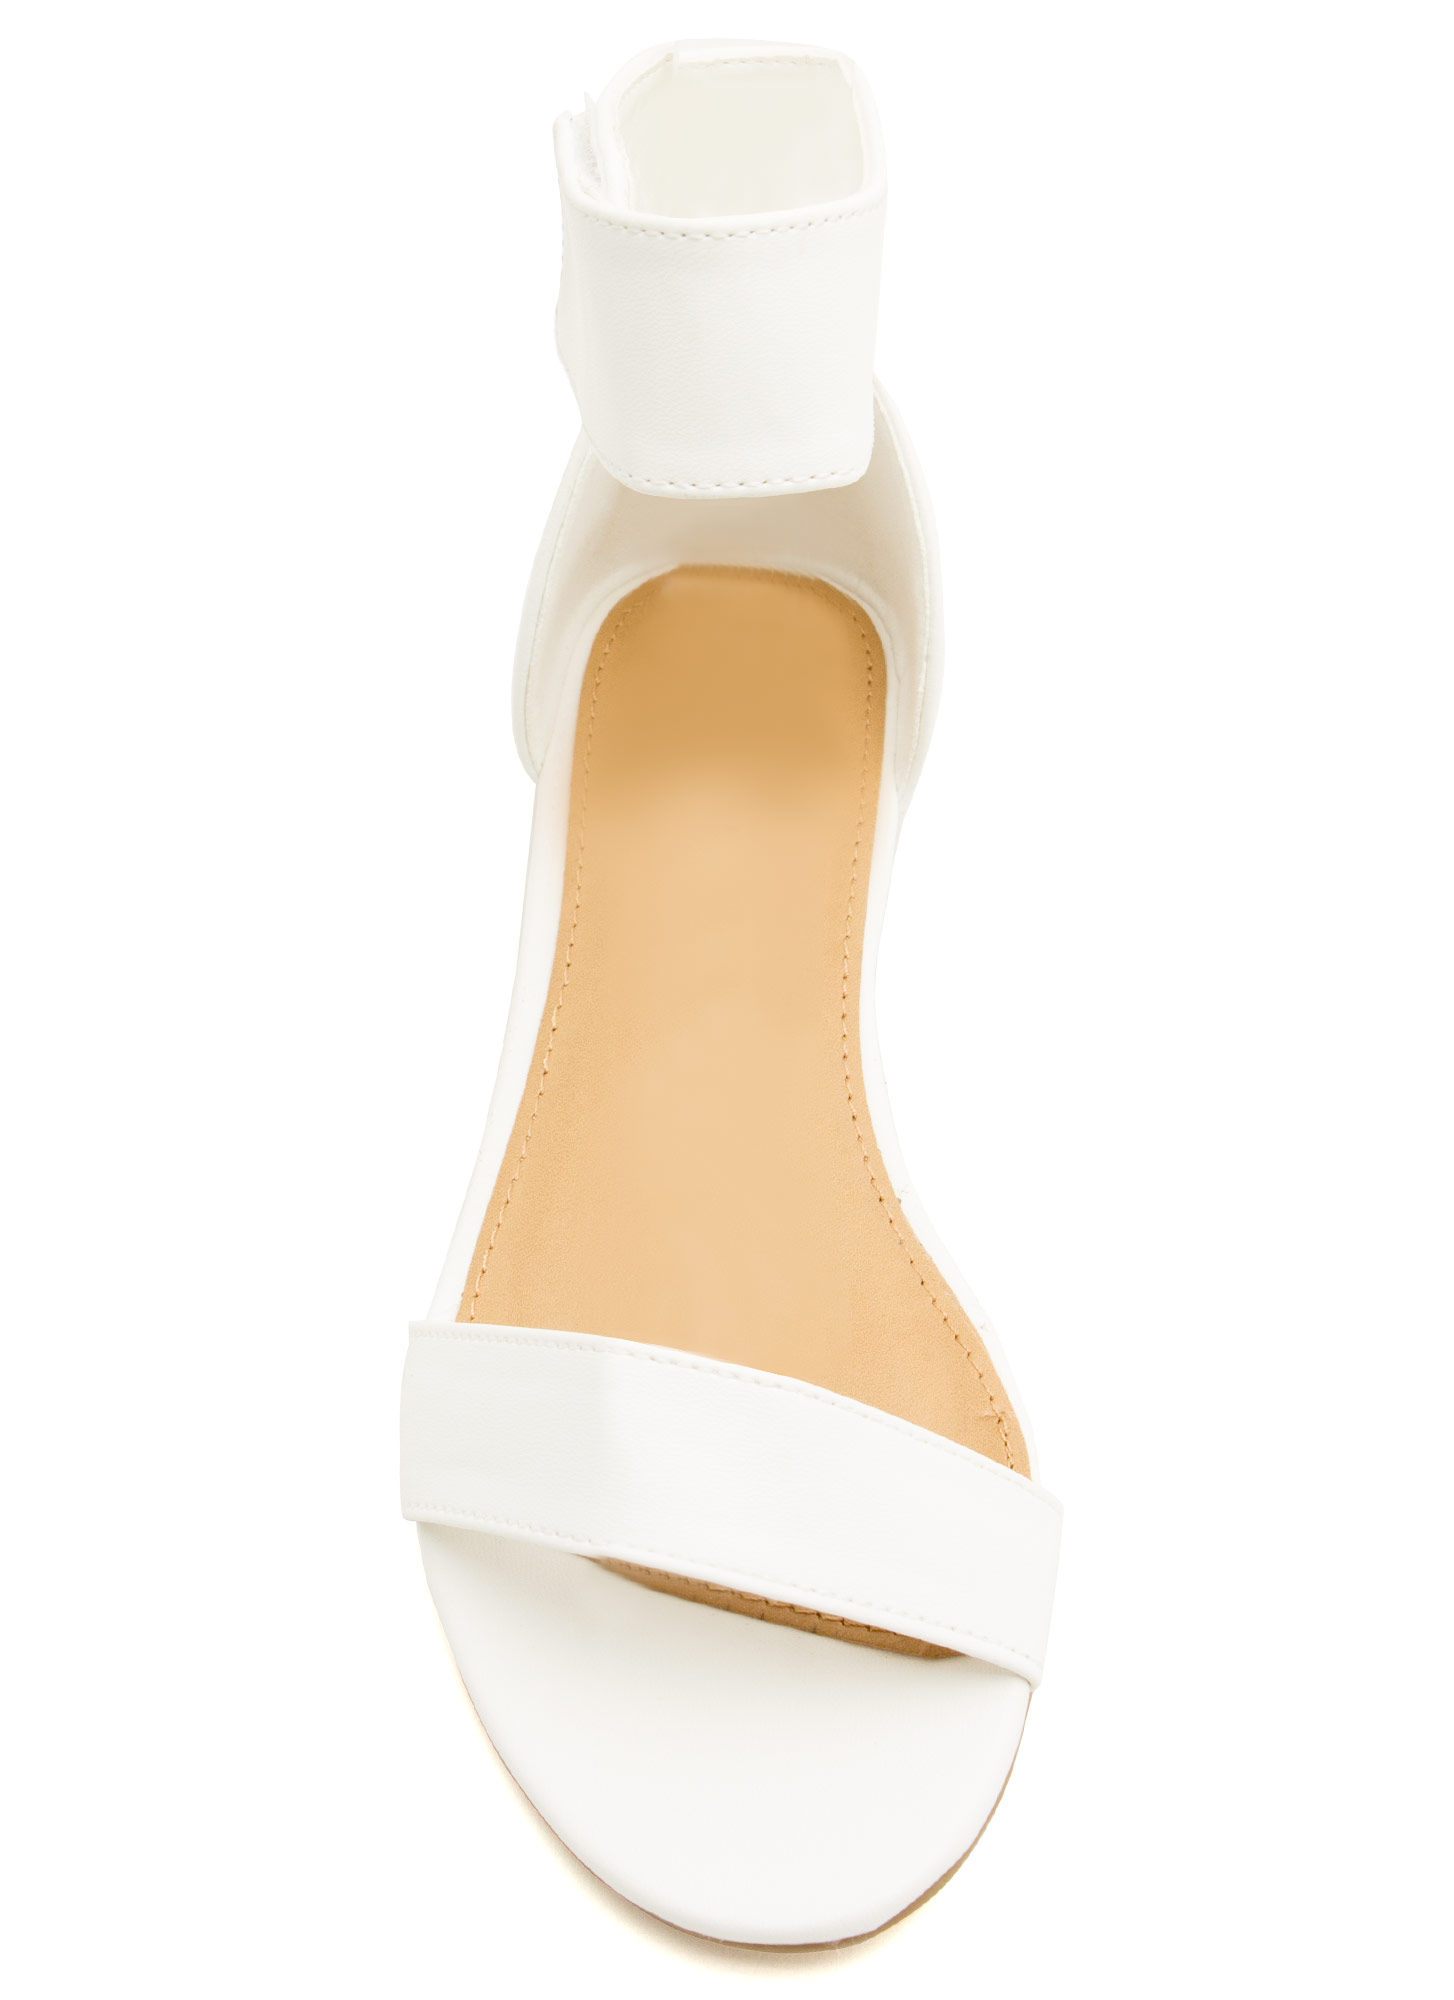 Ready To Mingle Single-Strap Sandals WHITE